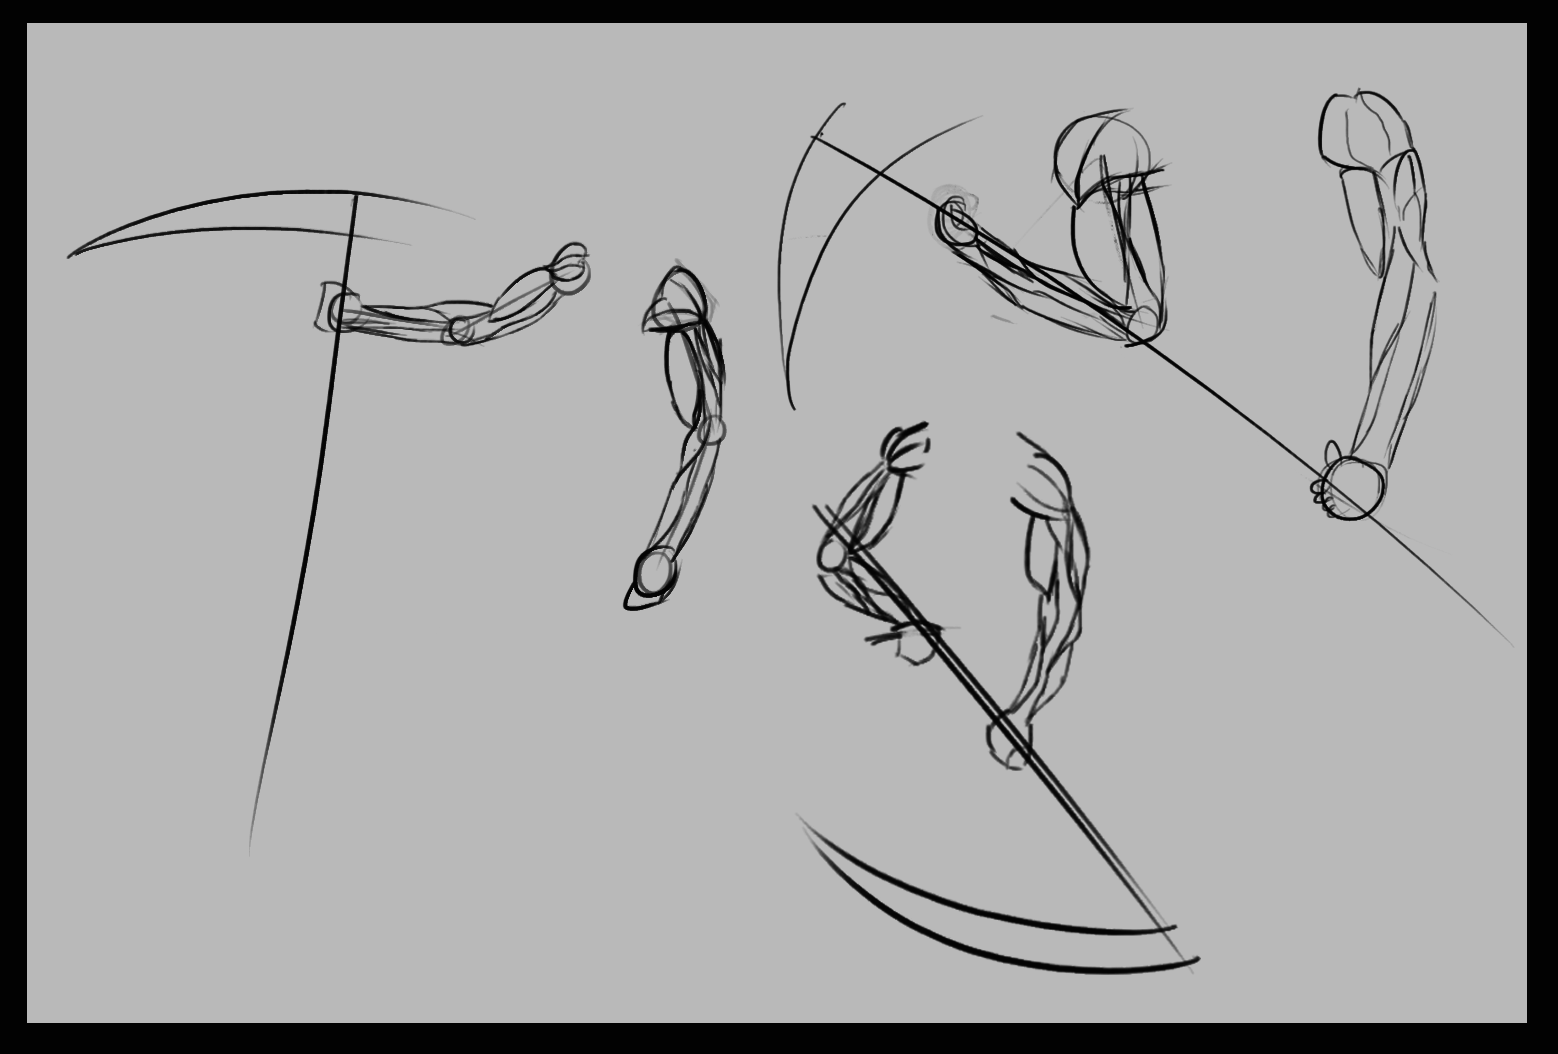 Drawn scythe headed Holding studies SketchDaily : Some